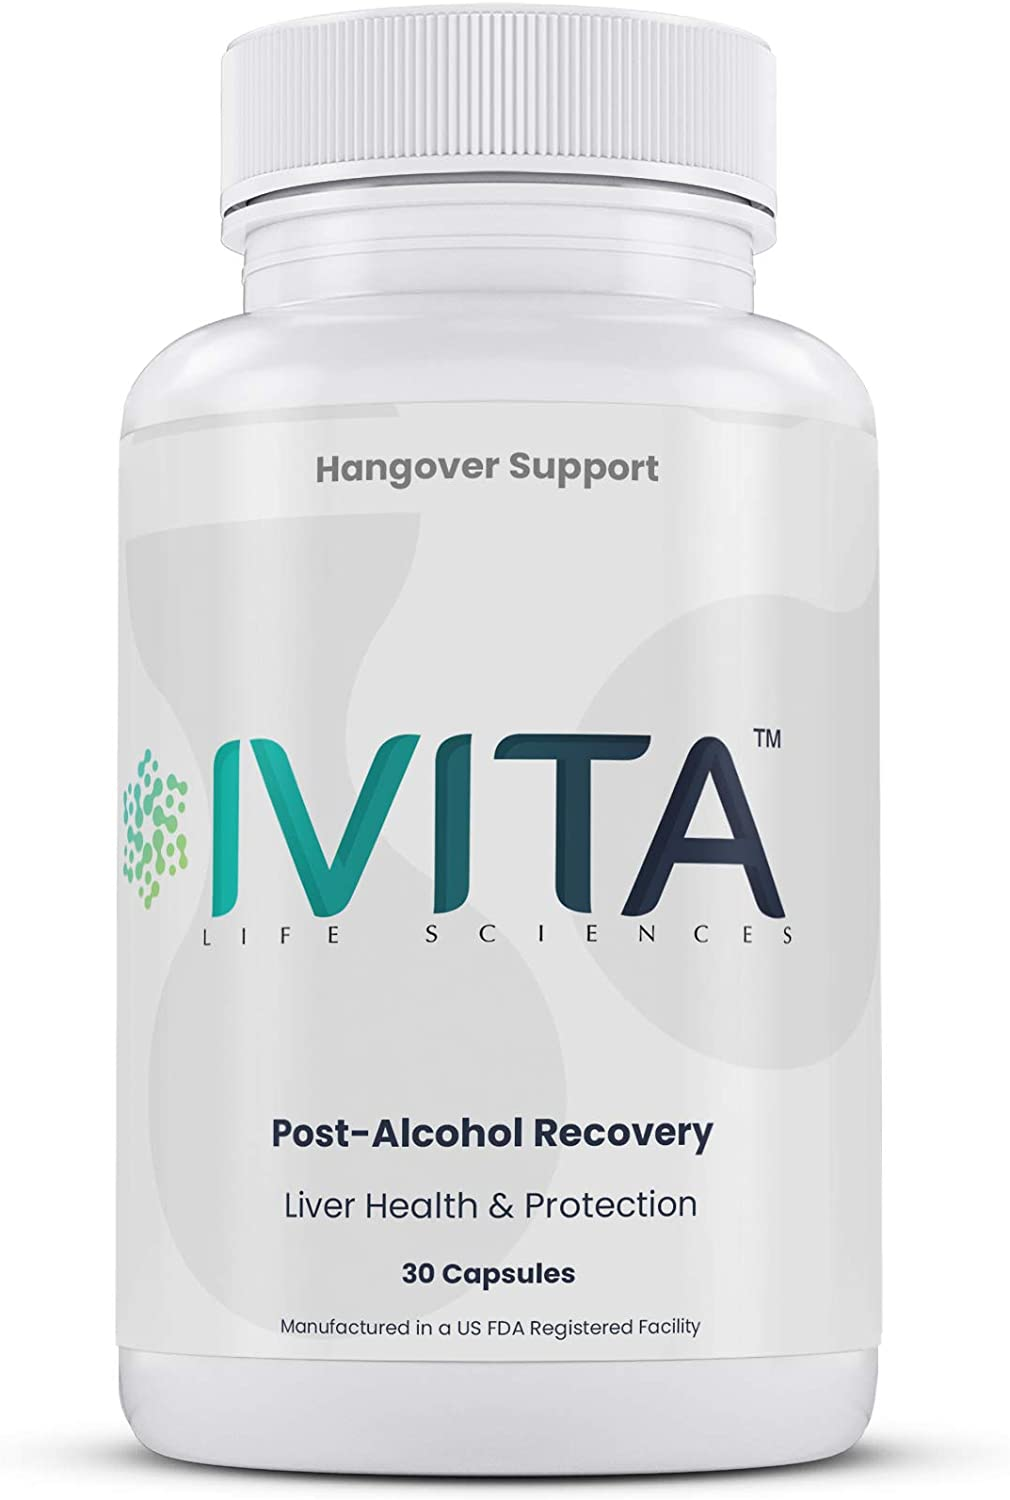 Hangover Prevention Pills - TOP Rated Formula - Liver Support & Nutrient Replenishment, Prevent Hangovers, Nightlife Prep Supplement, Dihydromyricetin (DHM), Prickly Pear, N-Acetyl-Cysteine,